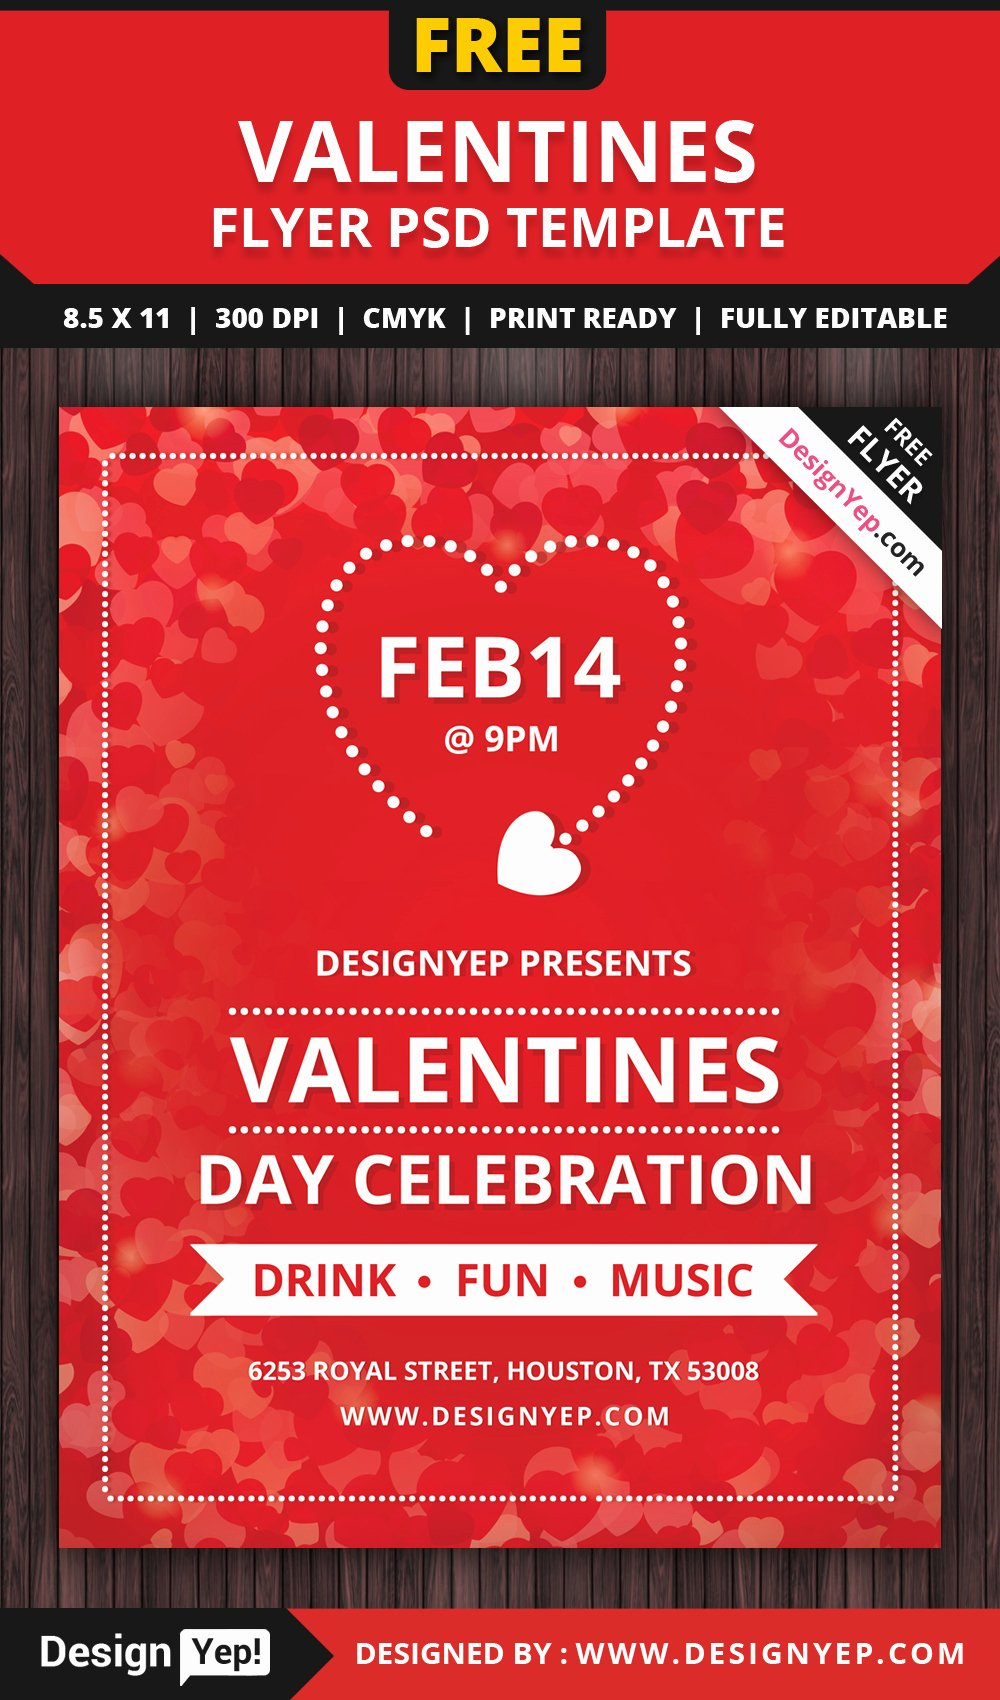 Valentines Day Flyer Template Free Inspirational Valentines Day Flyer Free Psd Template Designyep